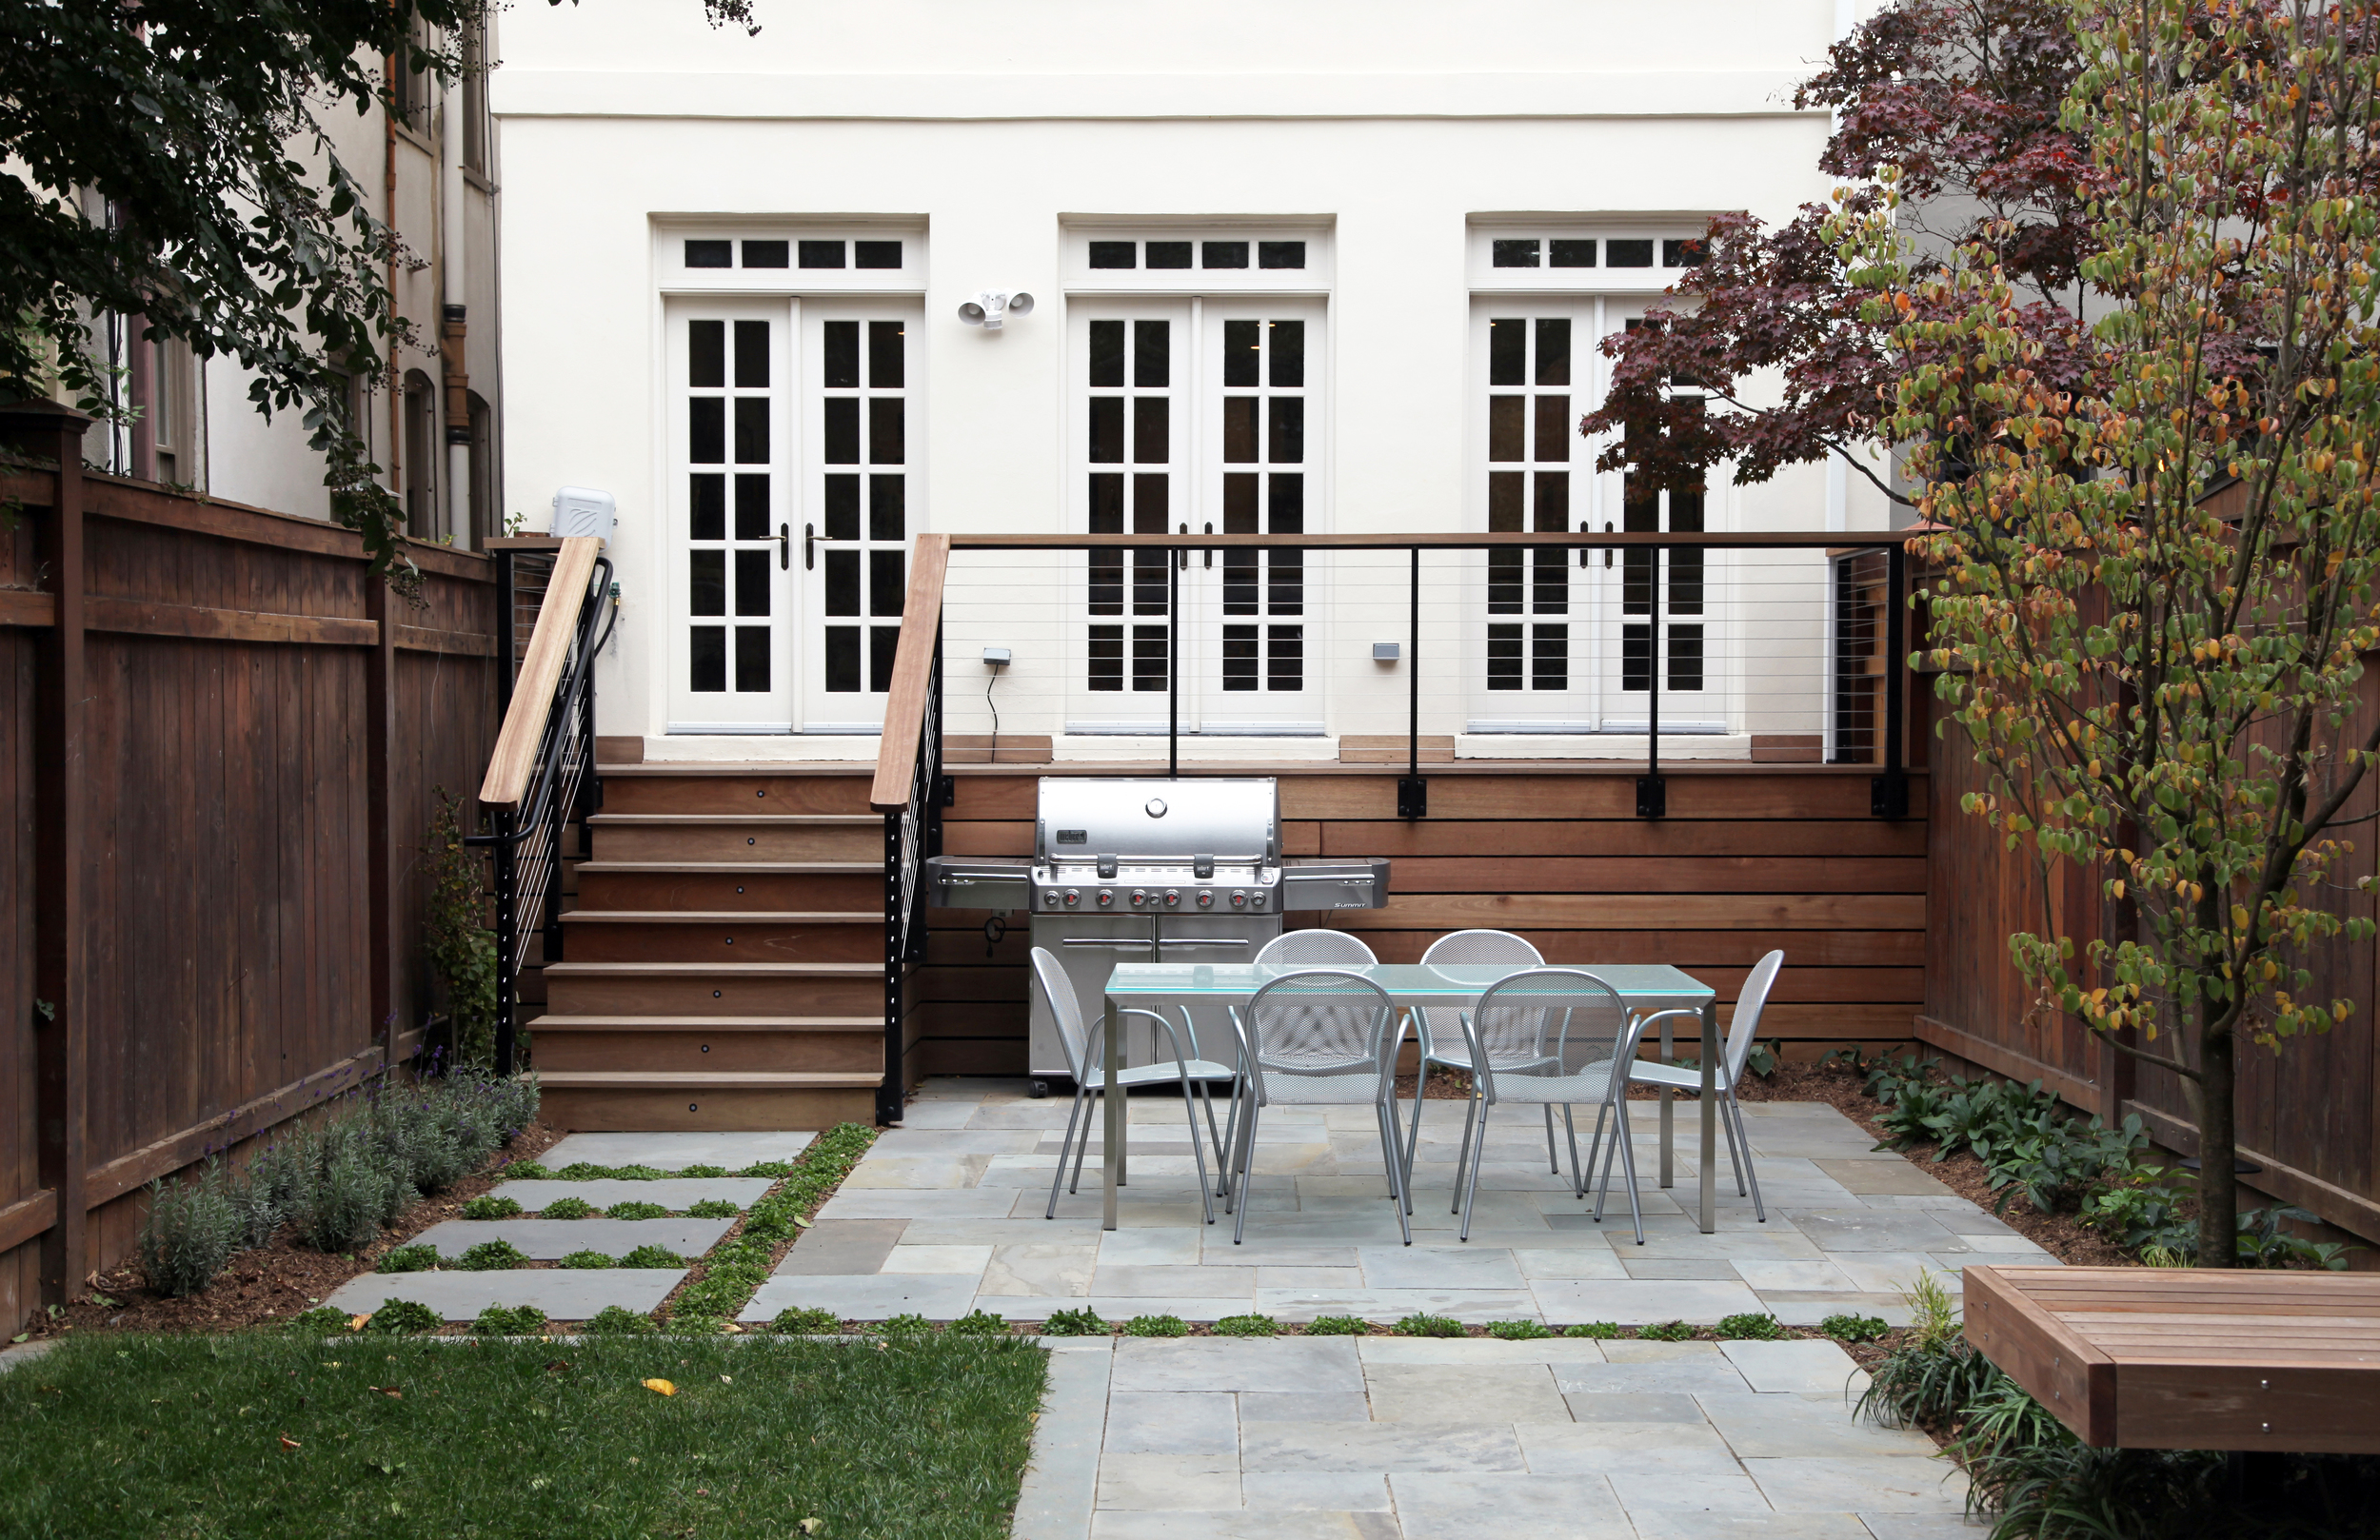 Project Location:  Washington, DC (Capitol Hill)    Completion: Fall 2014    General Contractor: Denchfield Landscaping   Primary Material Palette:  full range natural cleft bluestone,  mahogany, corten steel    Photos By: Moody Landscape Architecture (unless noted otherwise)